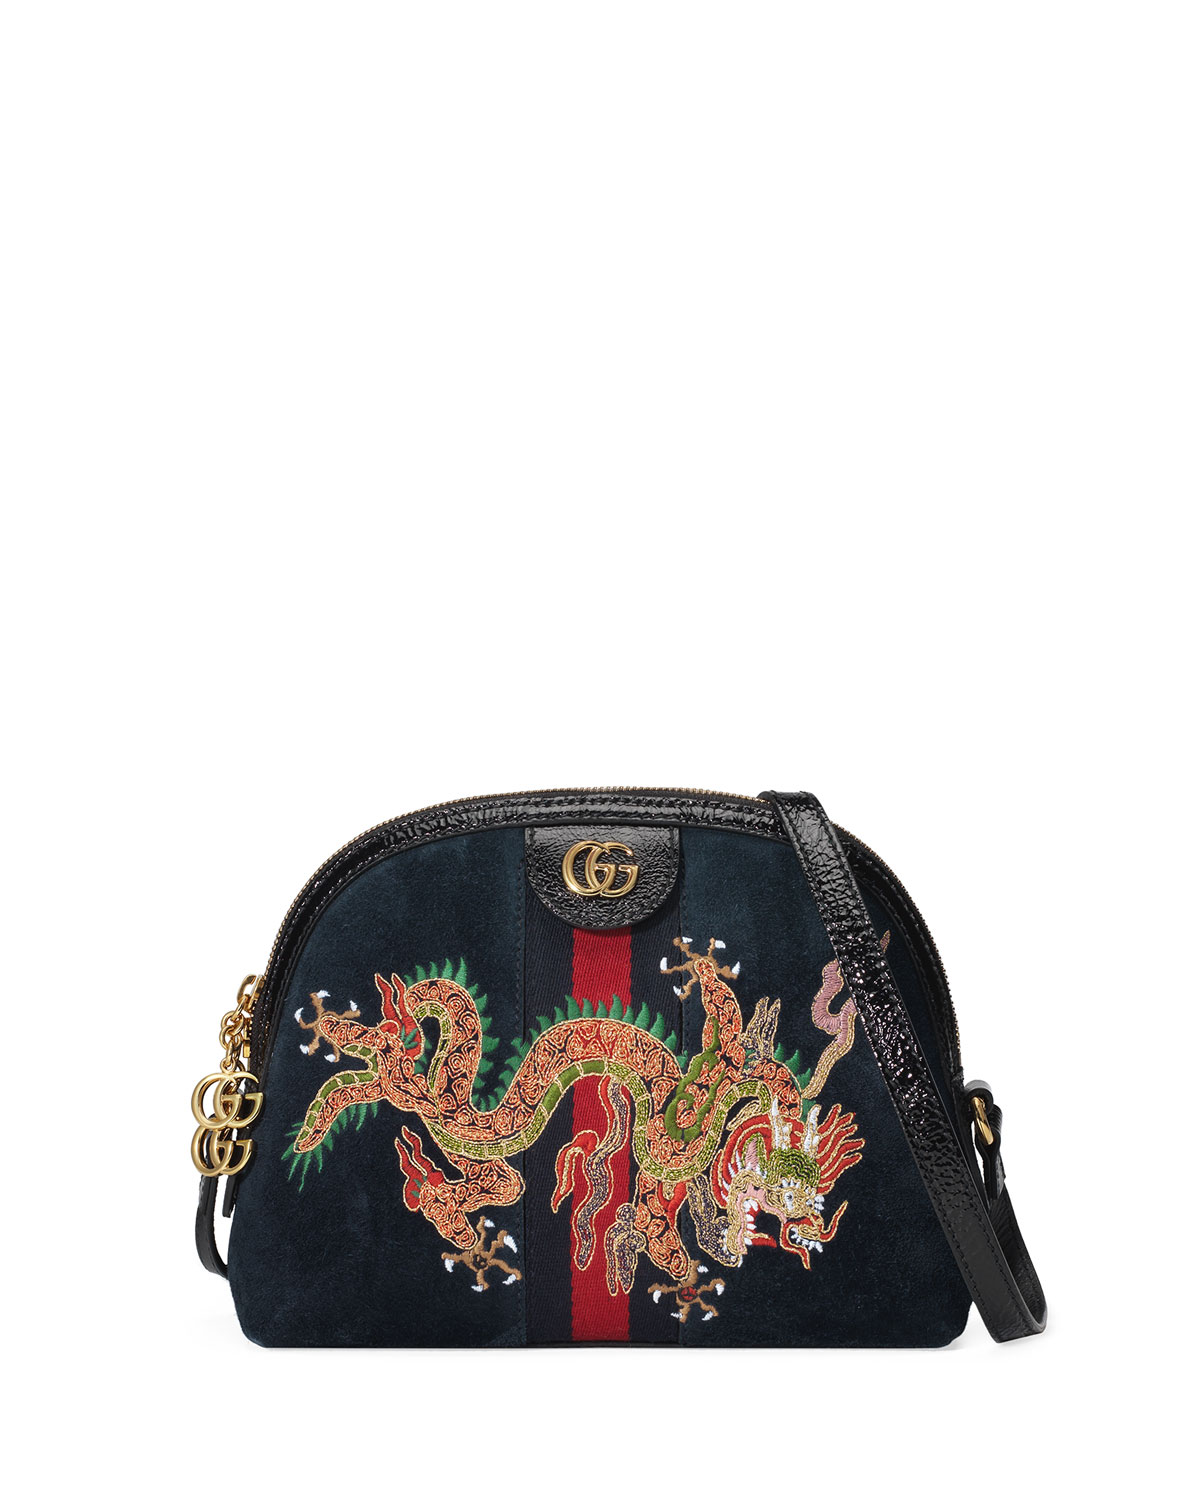 40037ae2300 Gucci Linea Dragoni Small Embroidered Suede Shoulder Bag